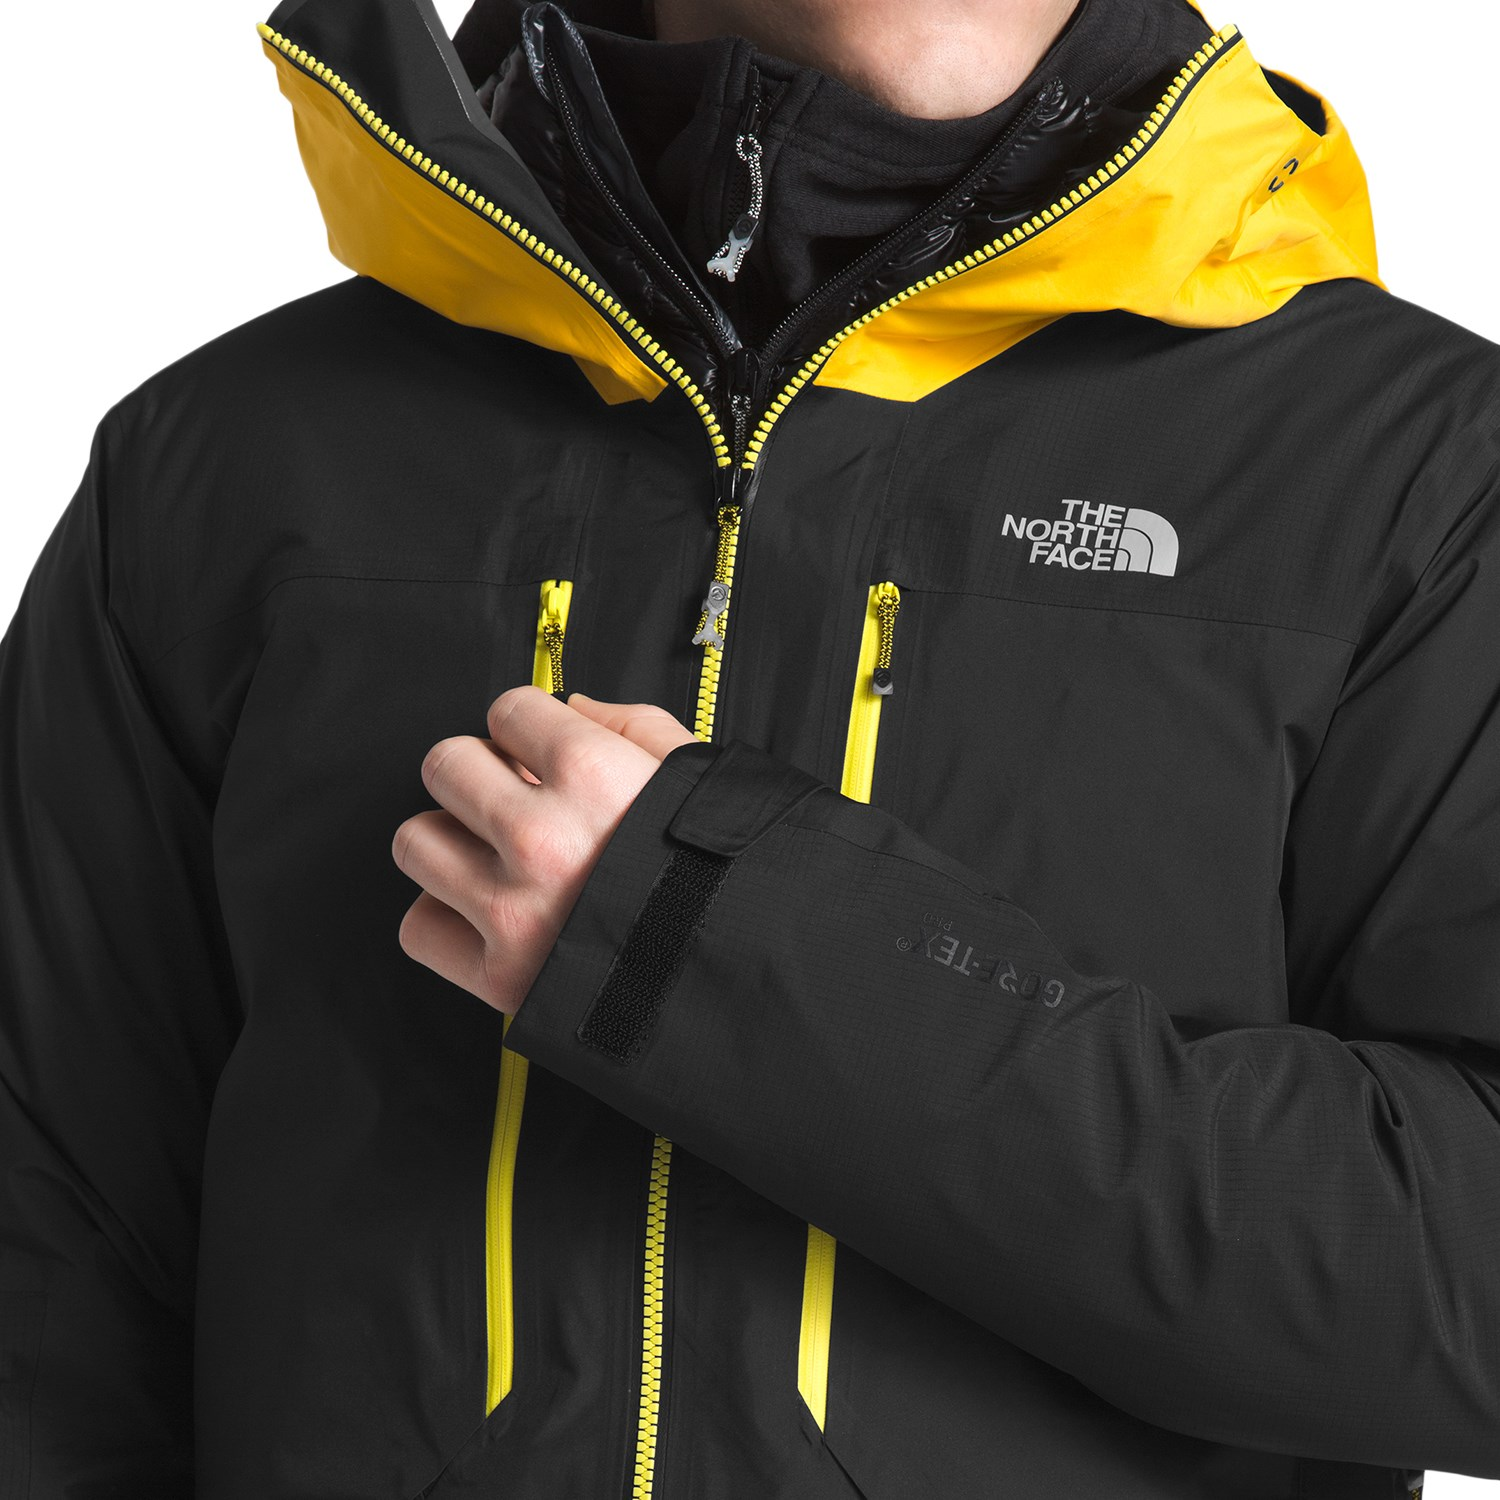 242fae780 The North Face Summit L5 GORE-TEX Pro Jacket